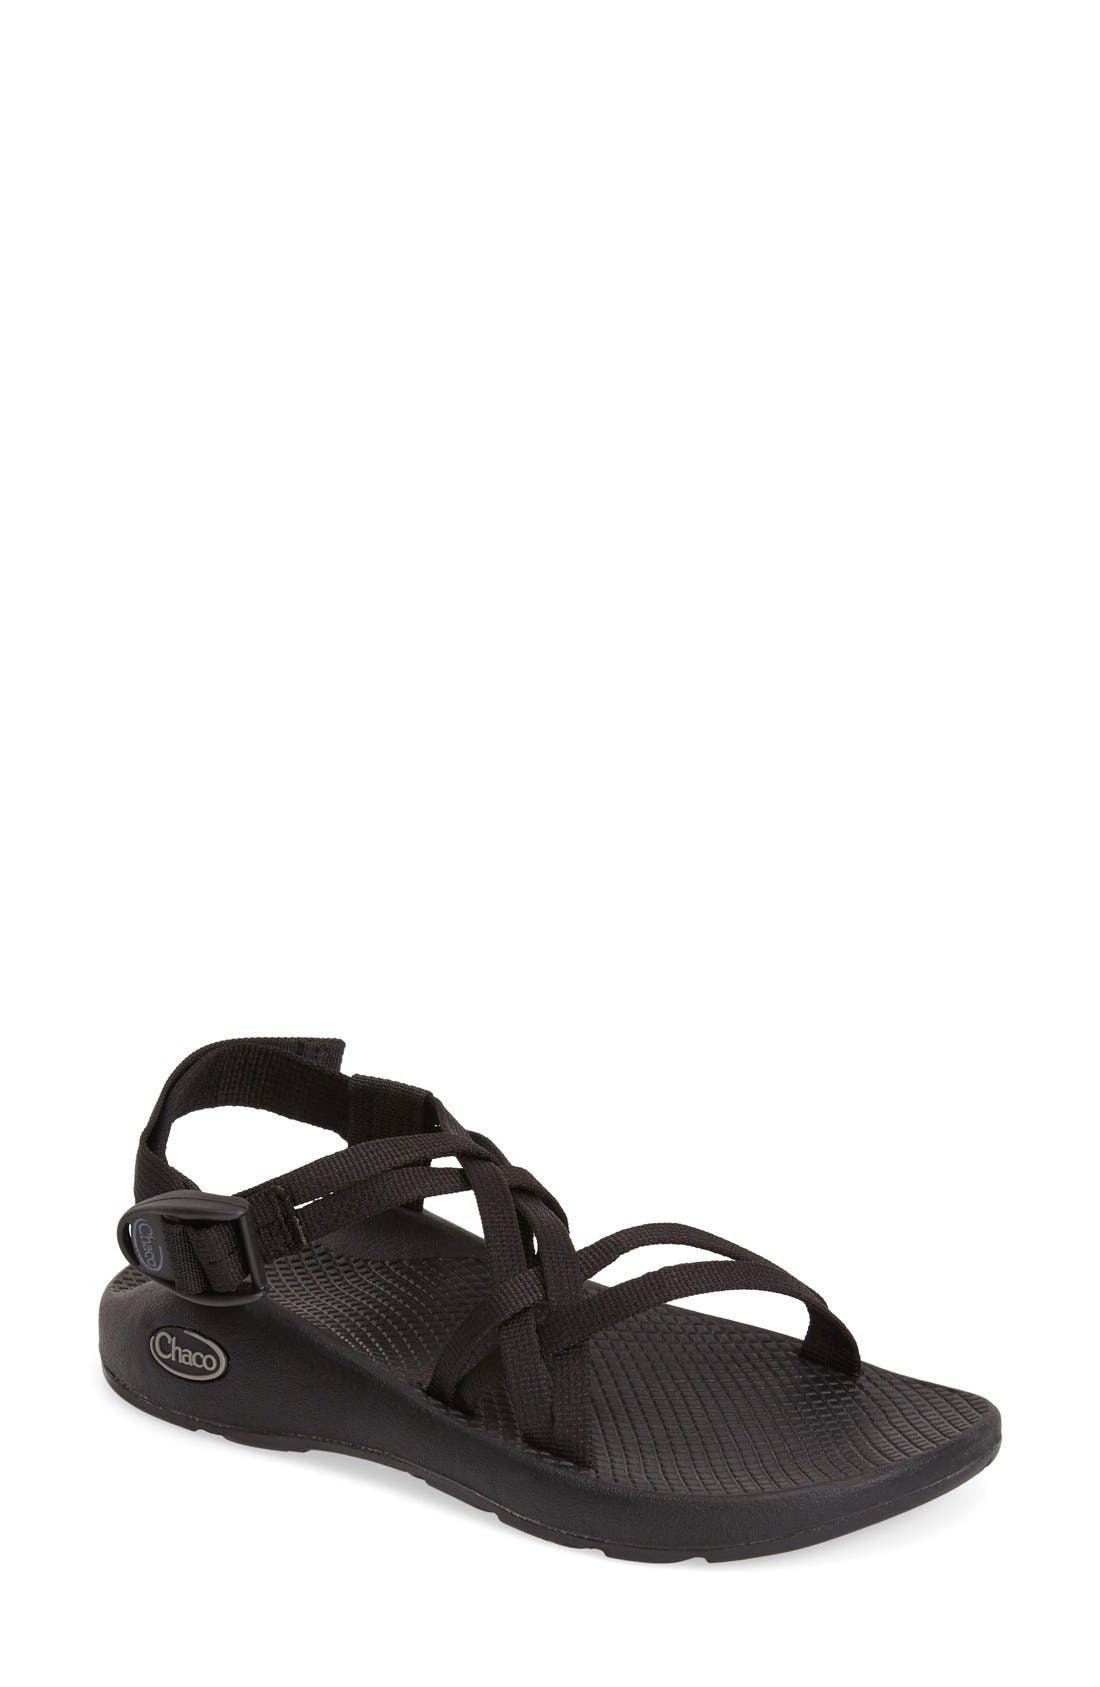 Main Image - Chaco 'ZX1 Yampa' Double Strap Sport Sandal (Women)